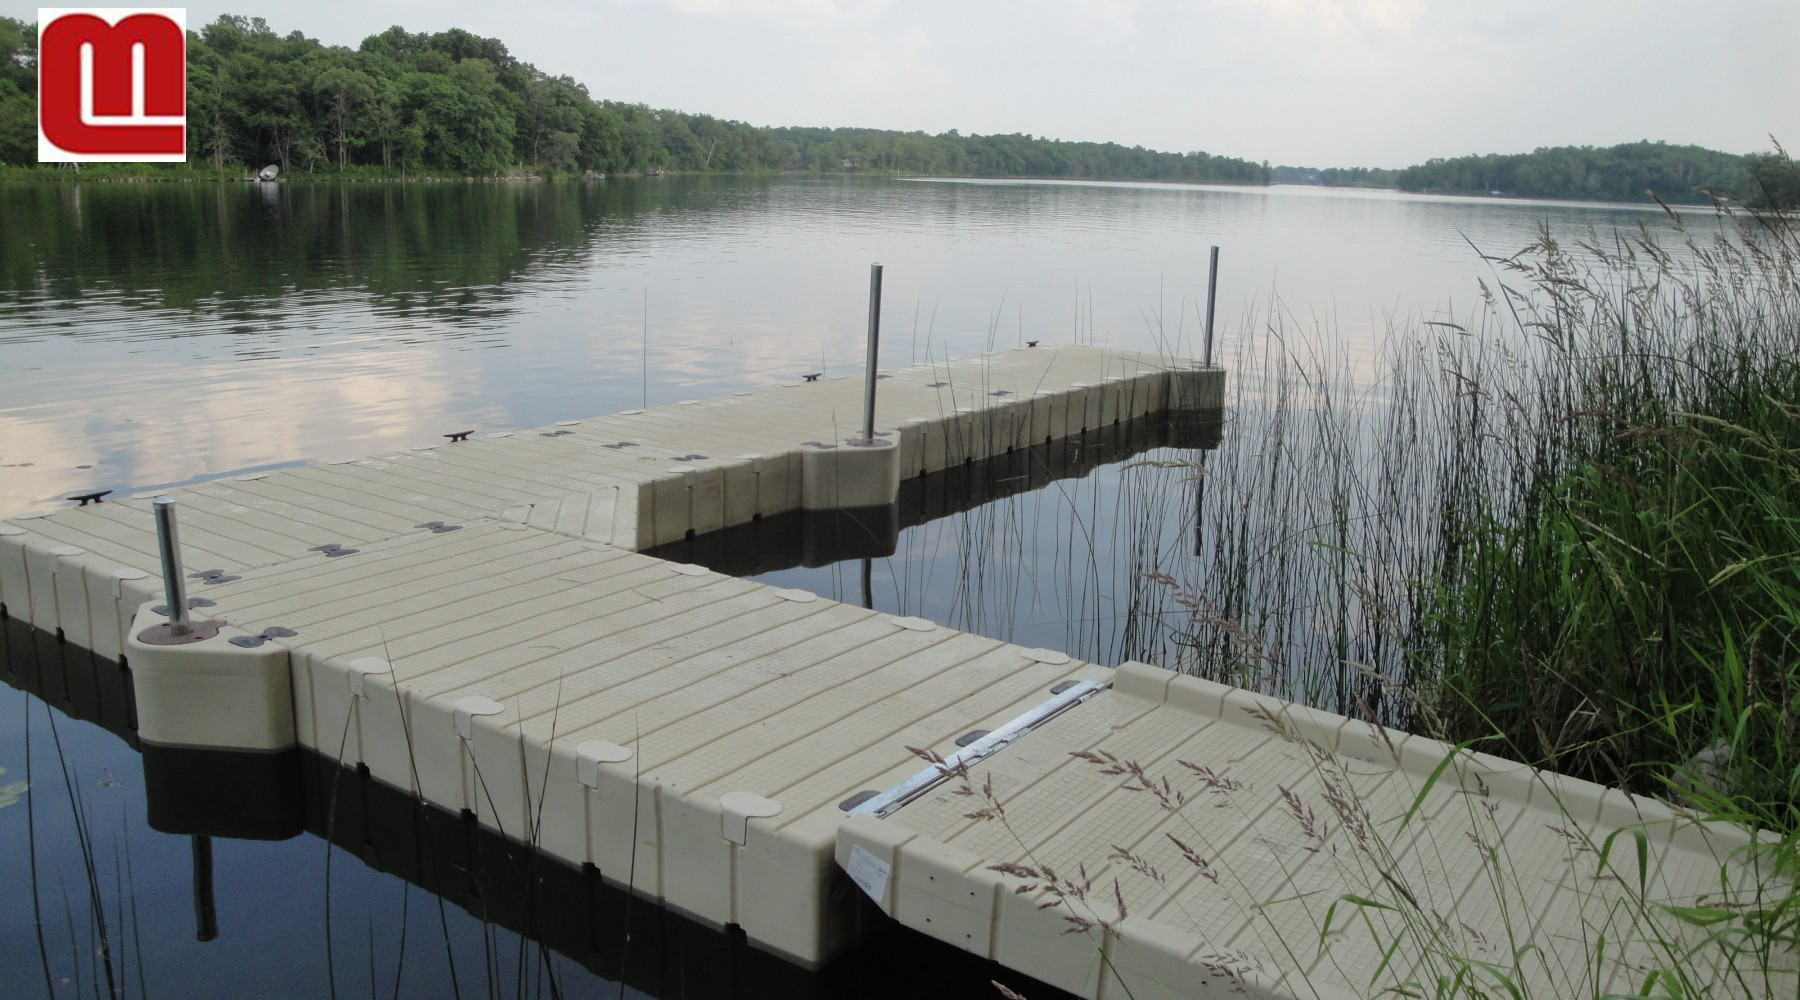 Dock Floats For Sale Mellow Single Cube Floating Dock For Sale Buy Jet Float Floating Dock Hdpe Floating Dock Plastic Jet Dock For Sale Product On Alibaba